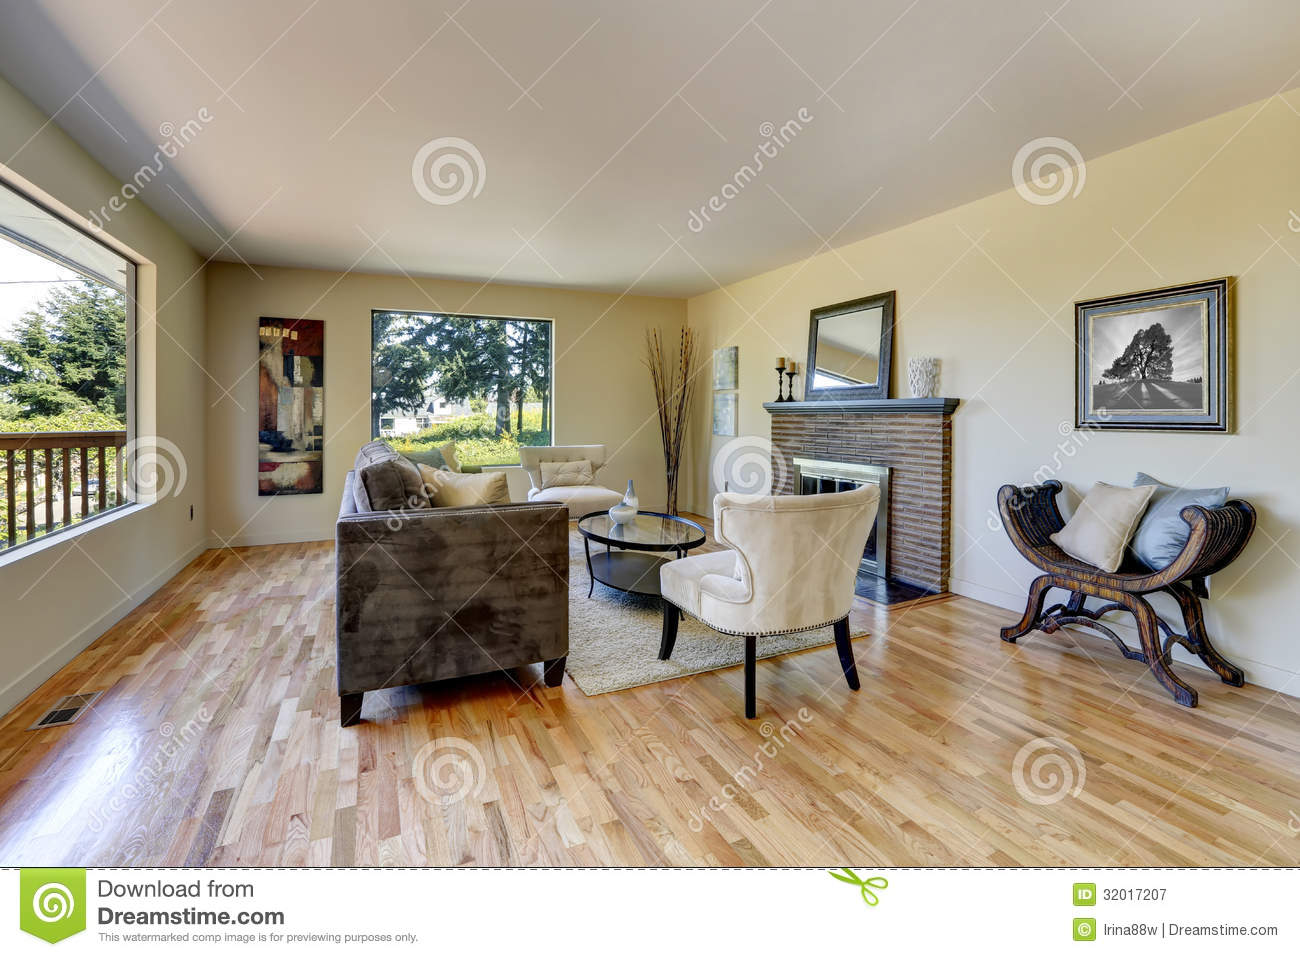 Living Room With Hardwood Floor Fireplace And Large Windows Royalty Free Stock Photography